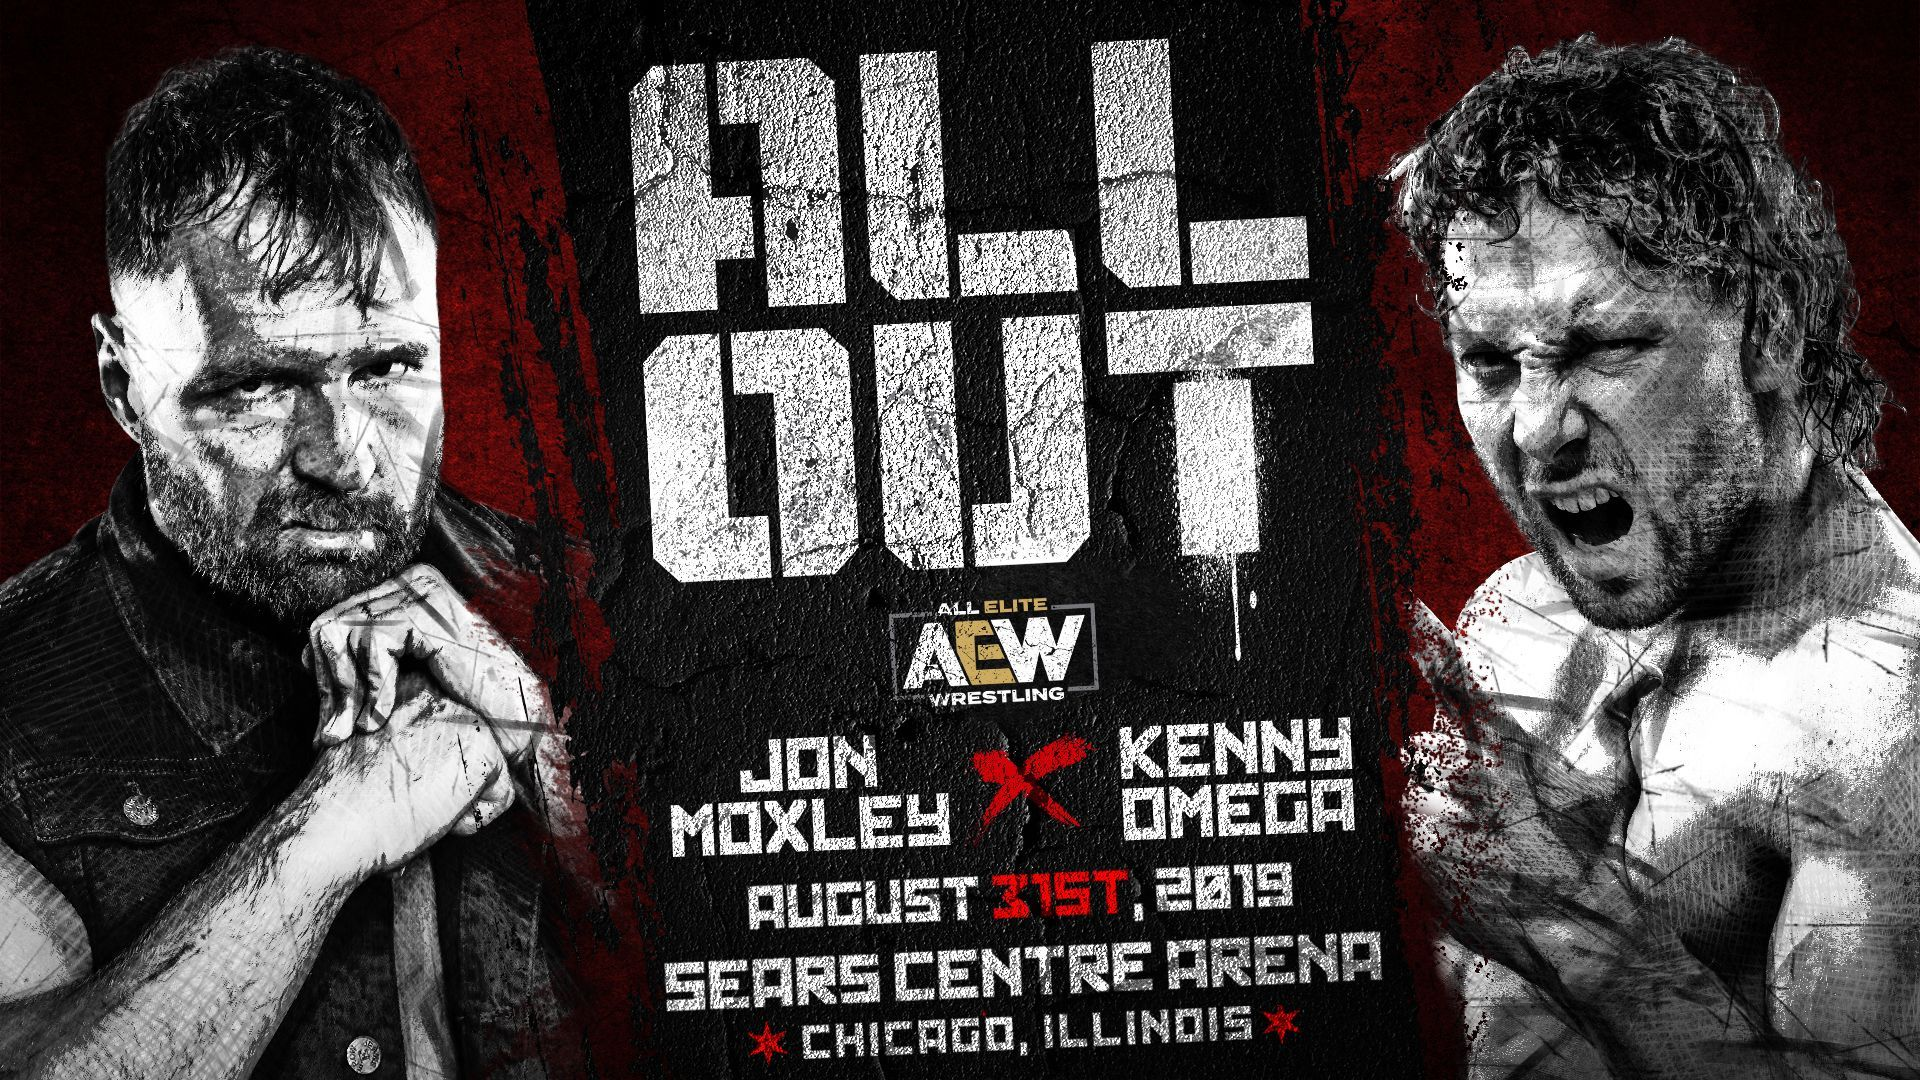 Jon Moxley vs. Kenny Omega official for AEW All Out